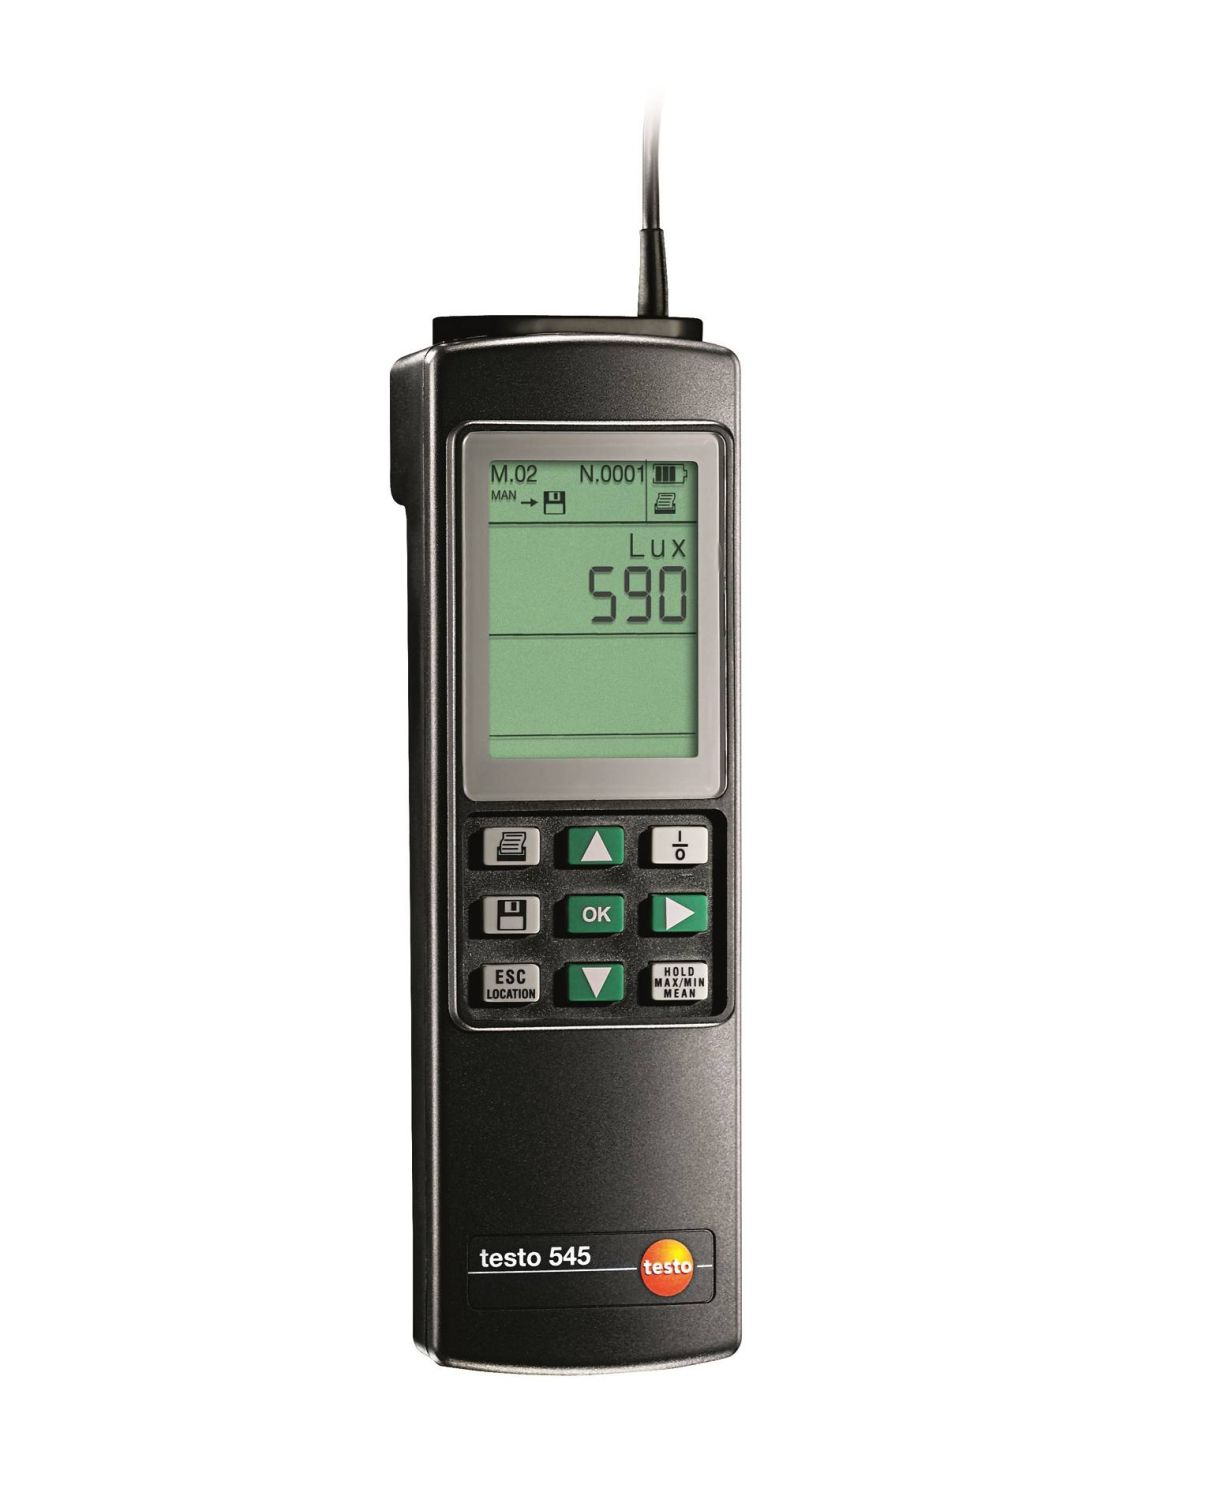 testo 545 - Light intensity measuring instrument with data storage